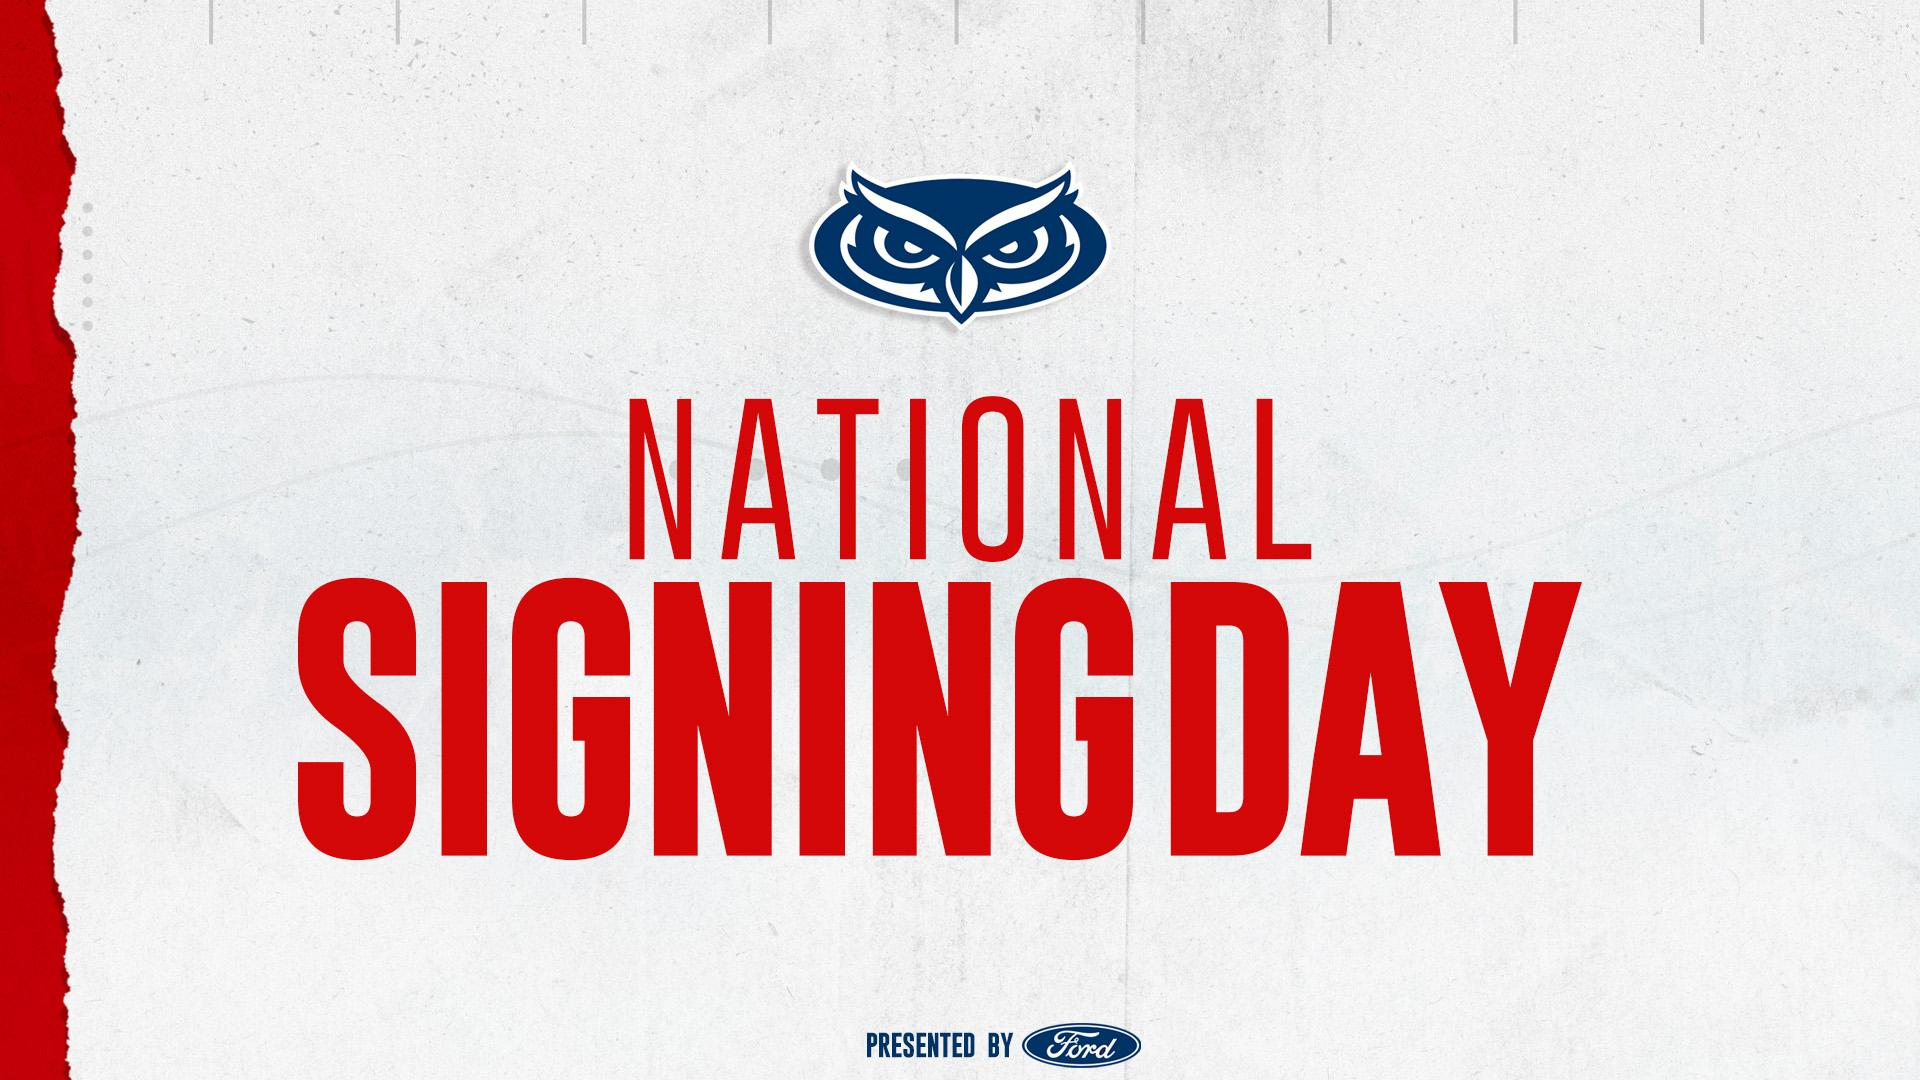 National Signing Day 2020 Wallpapers 1920x1080